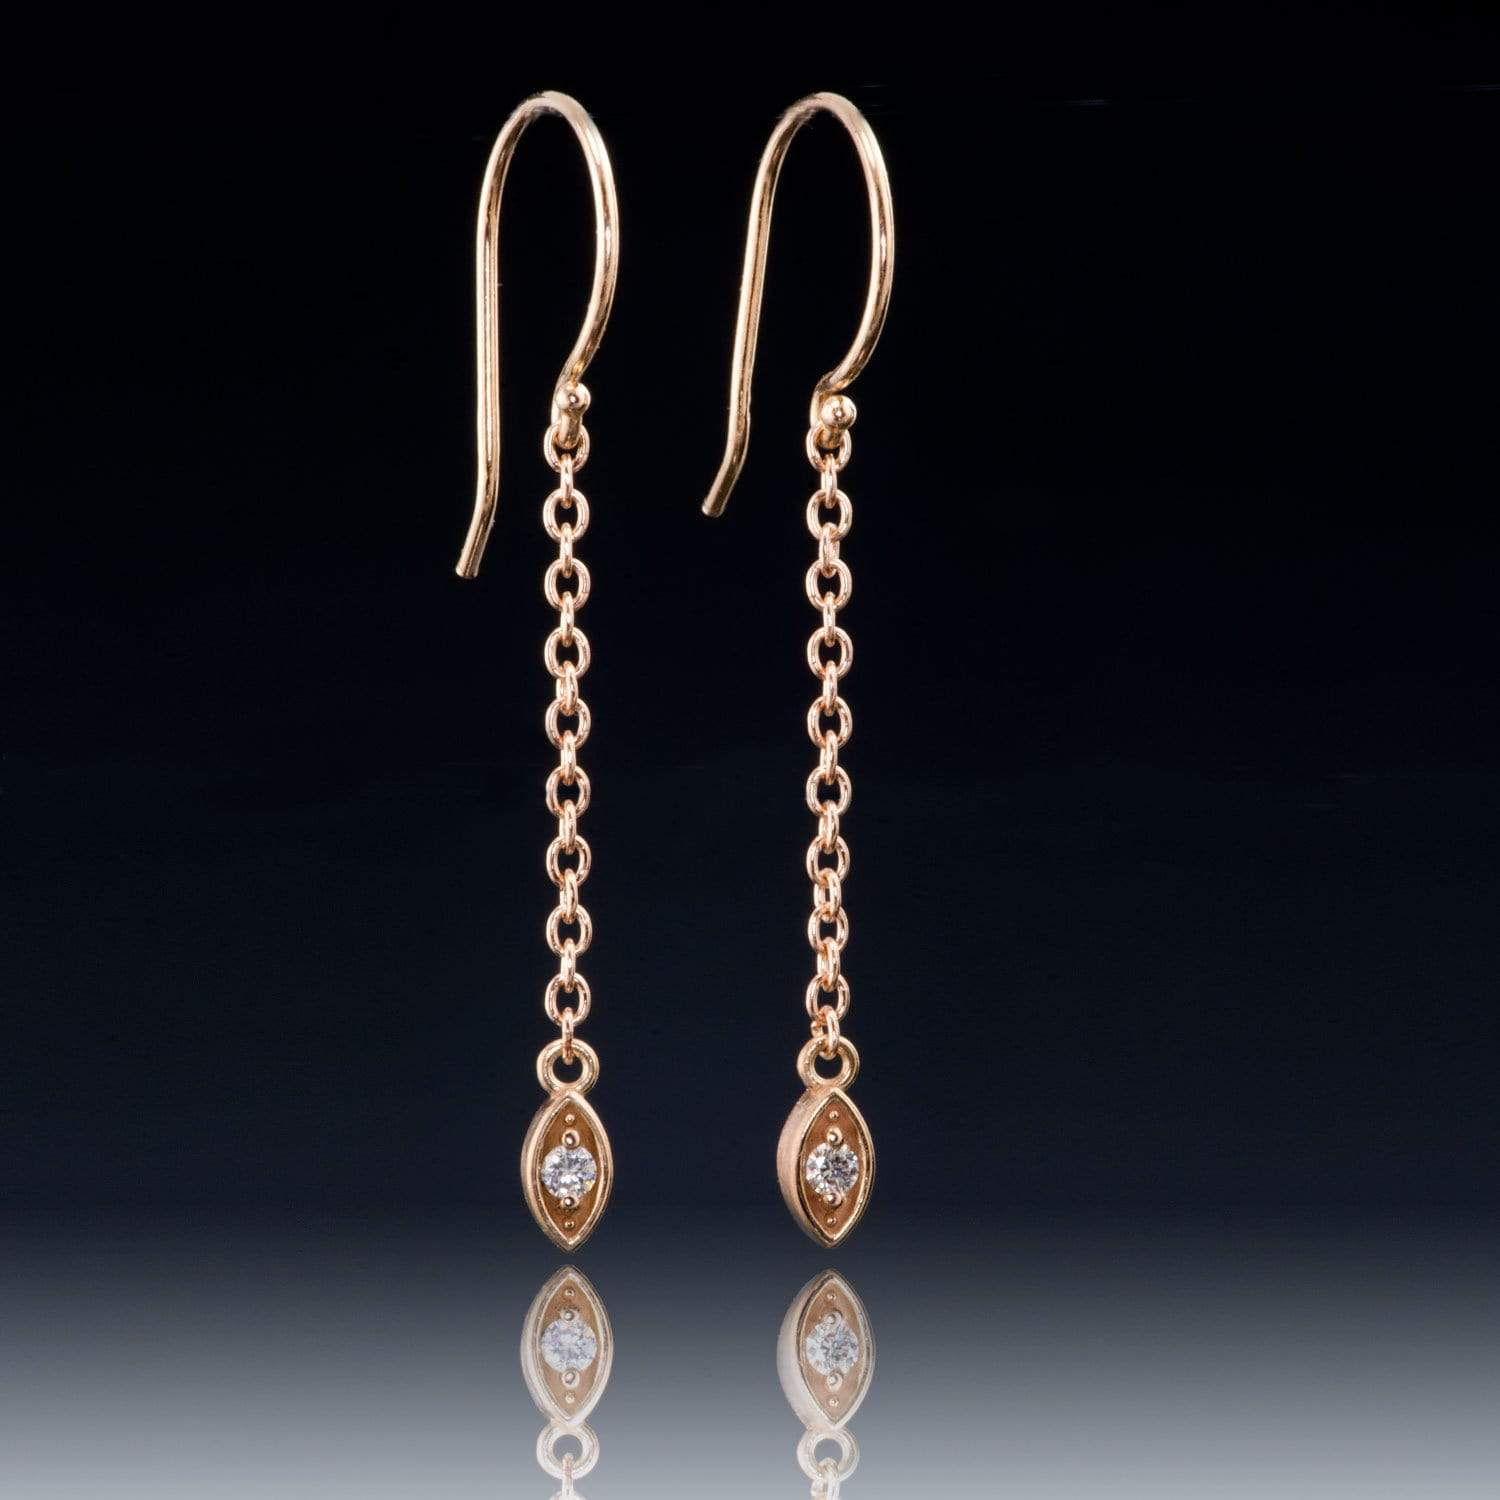 Diamond & Rose Gold Marquise Shape Long Dangle Earrings, ready to ship